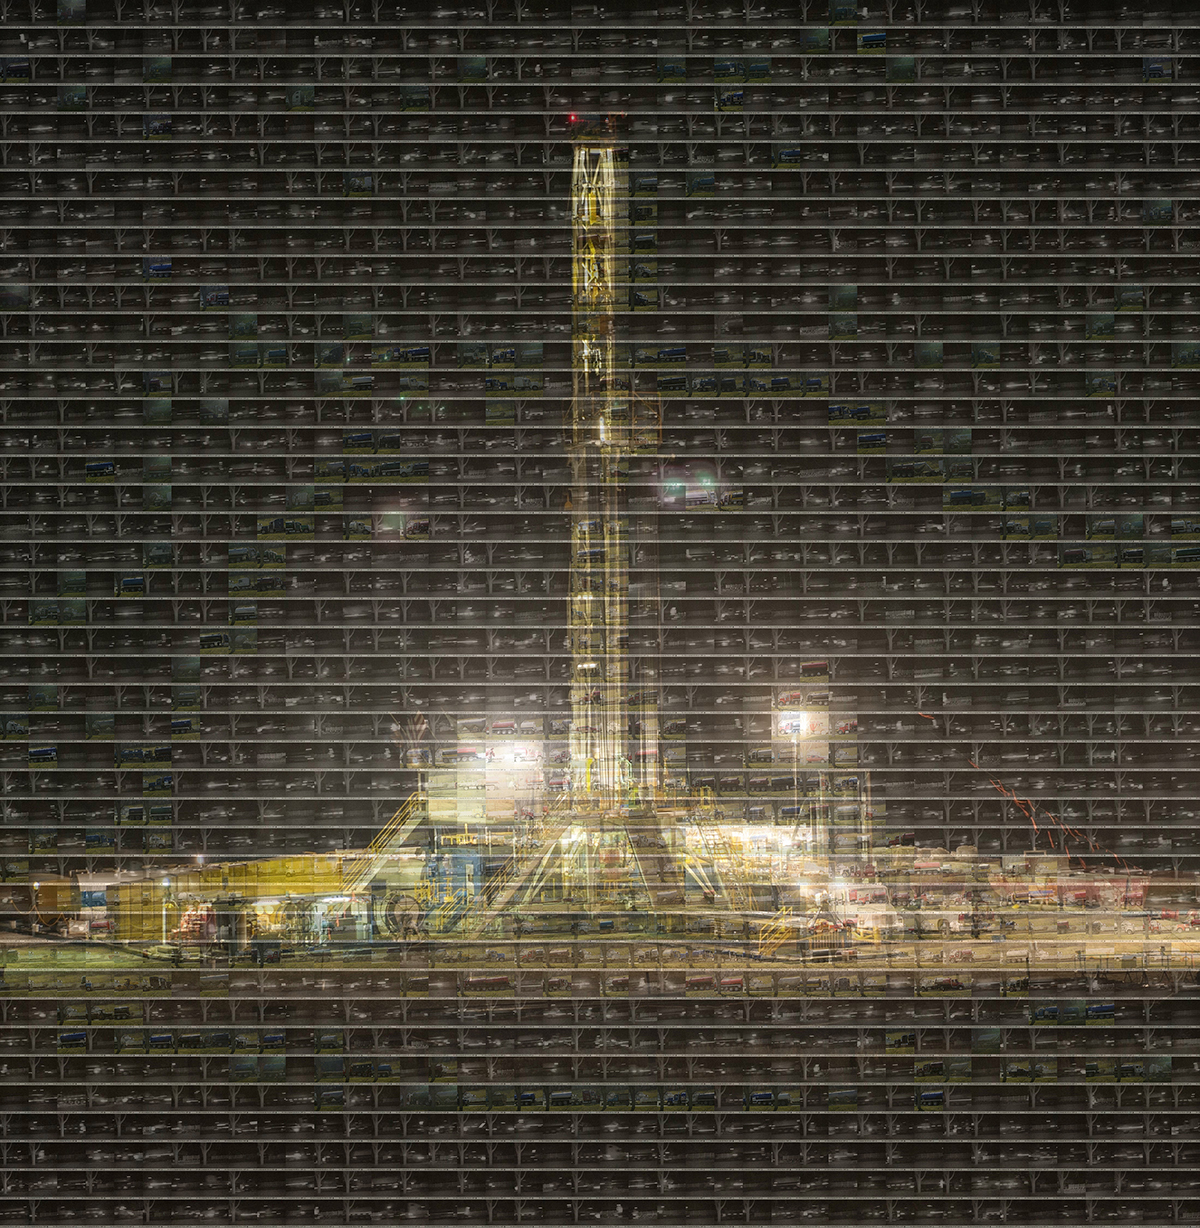 USA, Rome, 2011, A mosaic combining a shale gas drilling rig with 1764 timecoded images compiled from a set of 5121 images which were taken by Hop Bottom resident Frank Finan with a Bushnell wildlife camera over 91 hours from April 26, 2013 through April 30, 2013 showing the amount of truck traffic which passed in front of Rebecca Roter's home in Brooklyn, PA during operation of a nearby shale gas well pad.